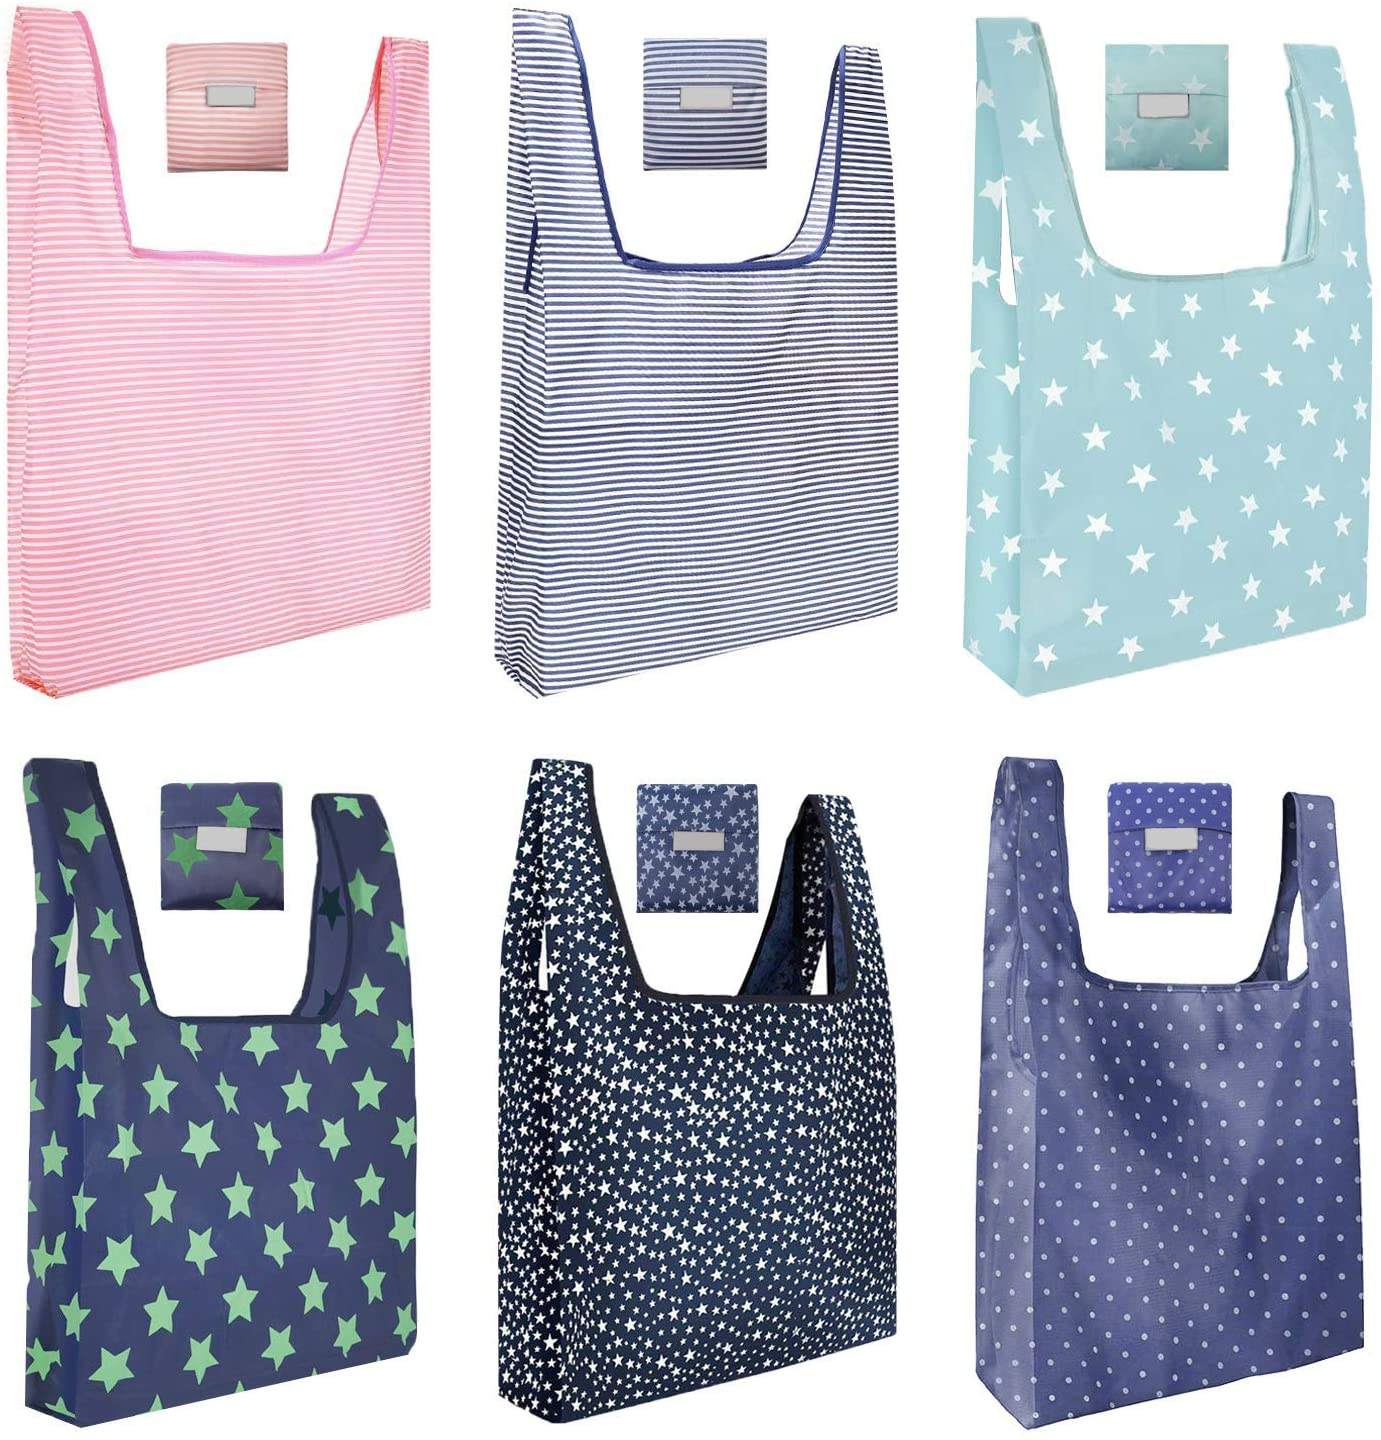 Multifunctional Lightweight Reusable Folding Bag Polyester Bag Customized Size Recycled Supermarket Bag Gifts